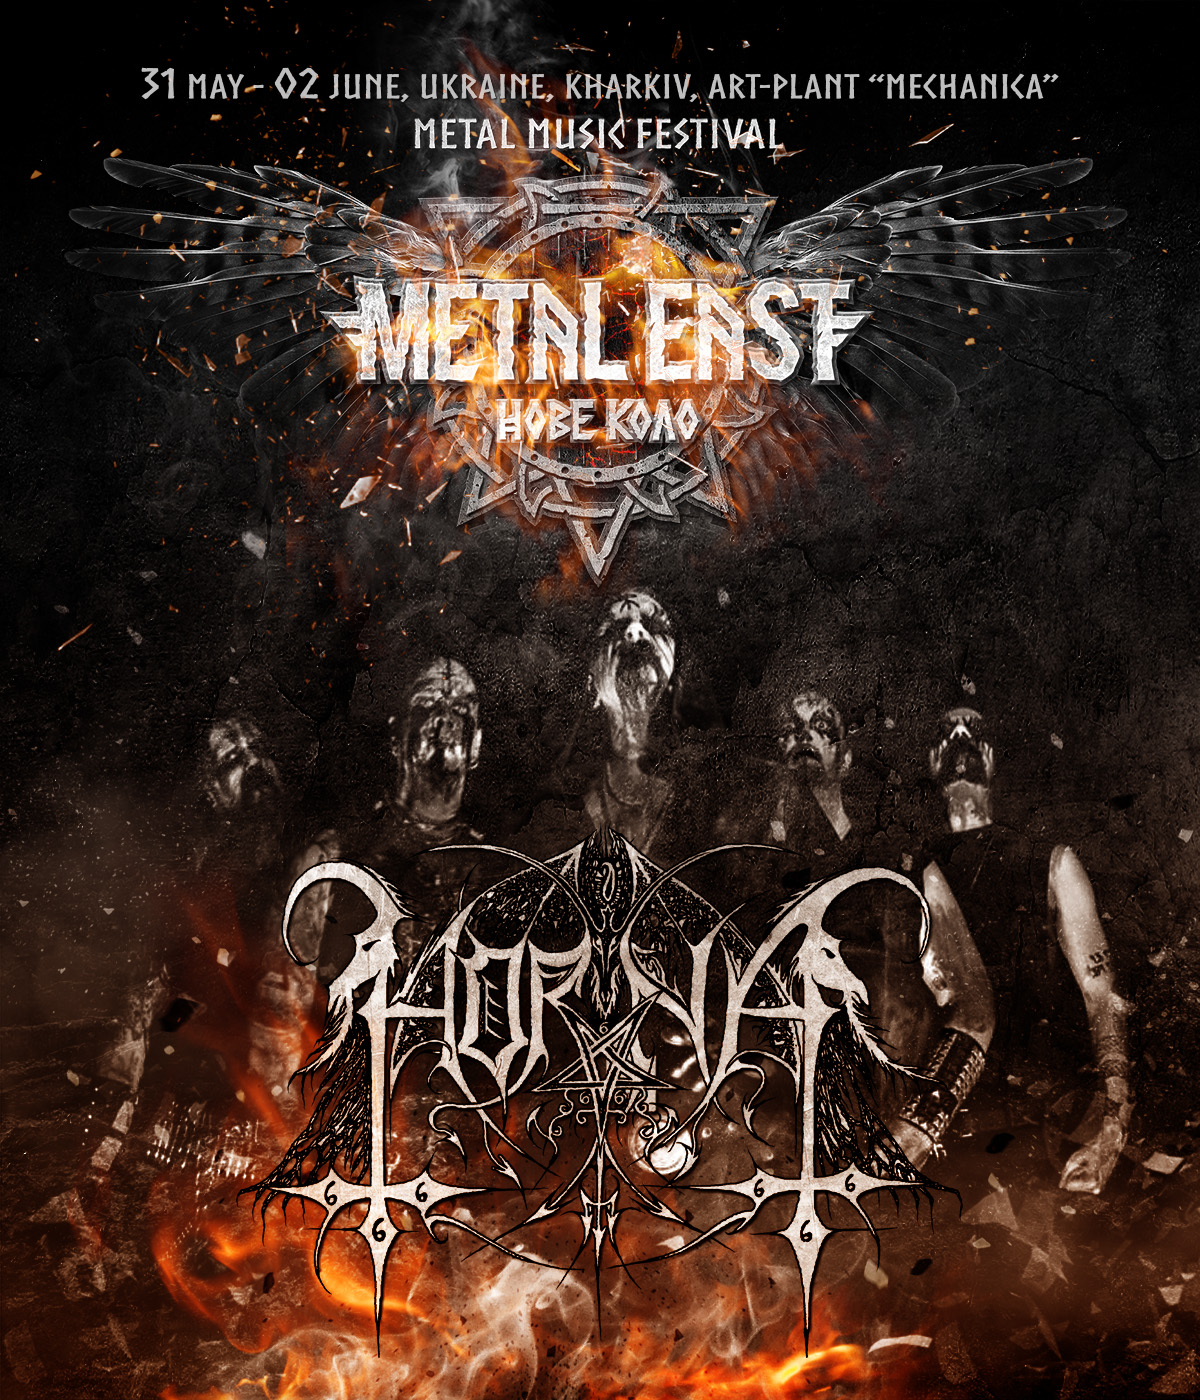 HORNA, the favorites of festival audience and crew, will perform for you again next year. Looking forward to meet you at Metal East Nove Kolo festival in Kharkiv from May 31 to June 2 of 2019!